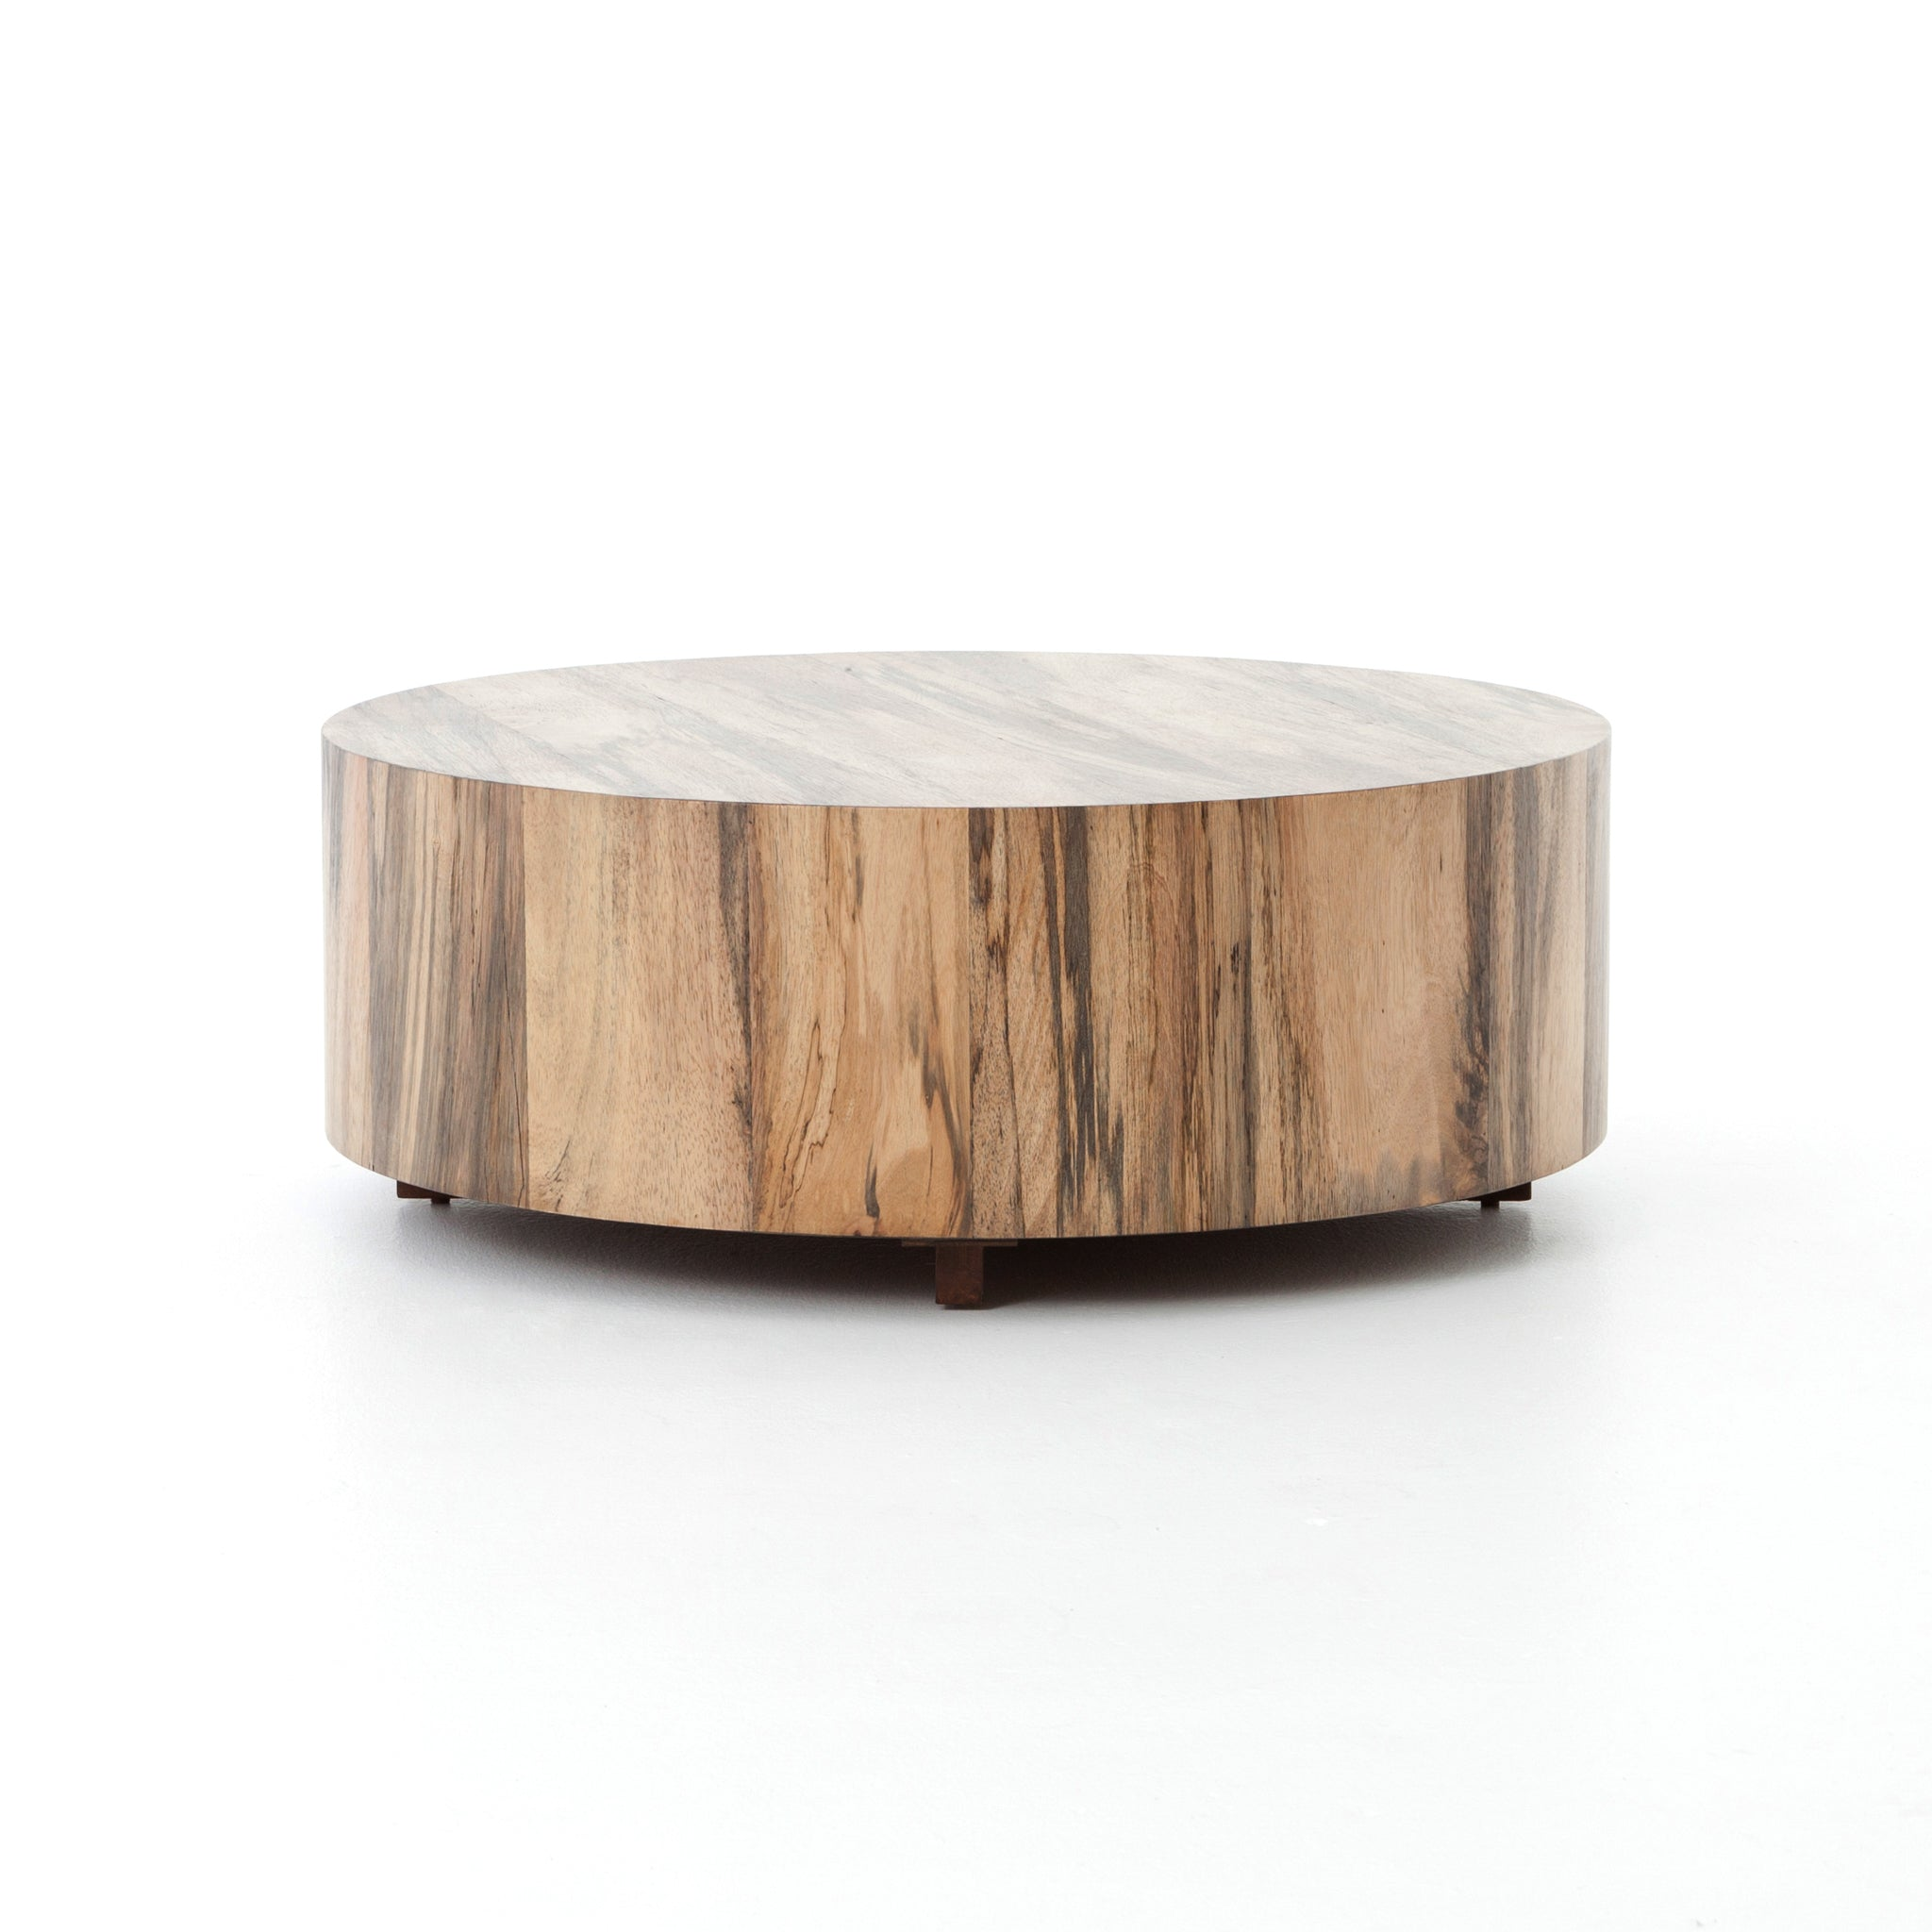 Hudson Coffee Table In Various Materials Burke Decor